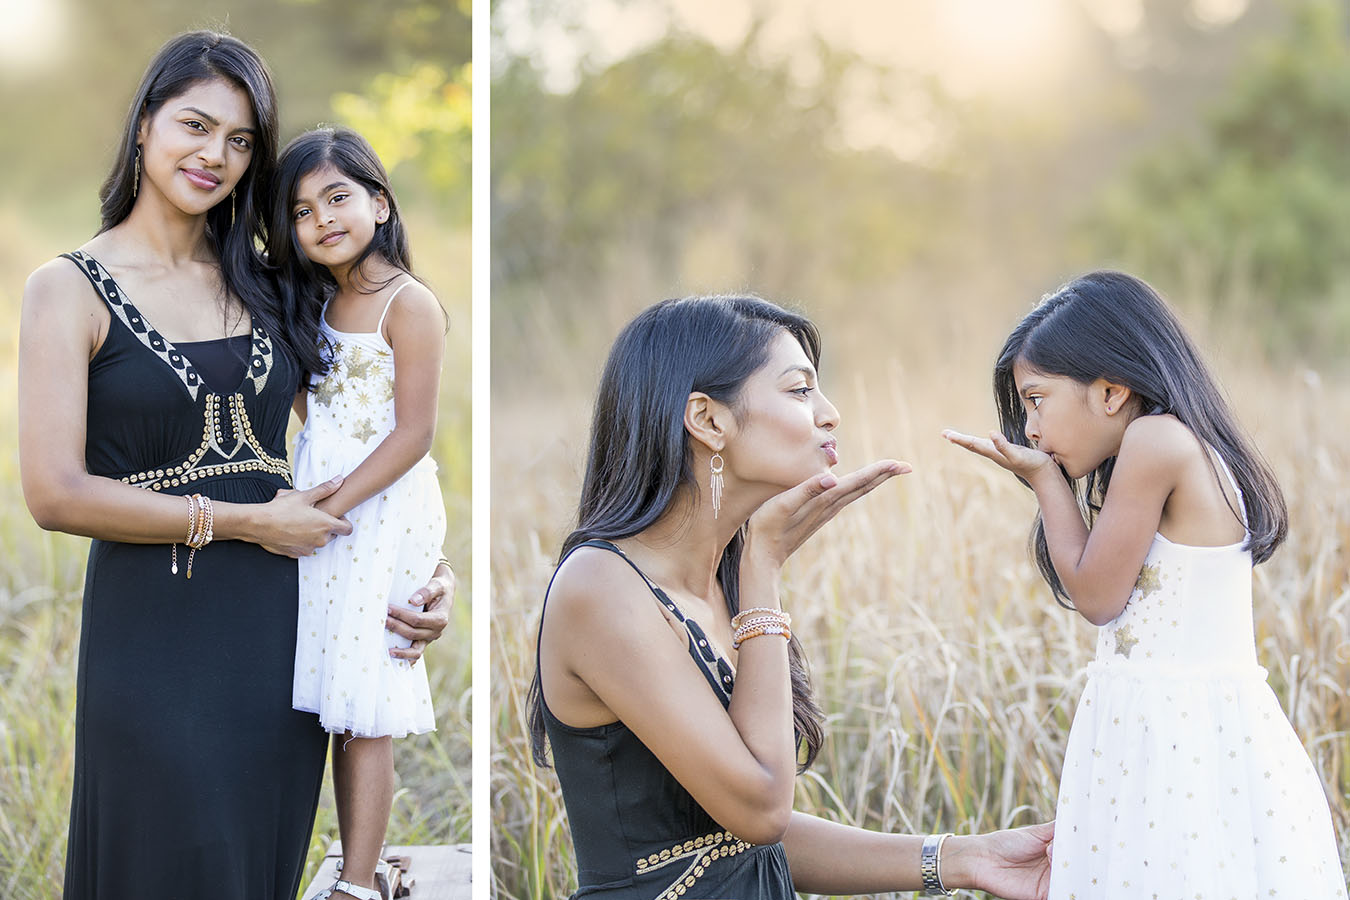 mother-daughter-air-kisses-henry-summers-photography-wedding-photographer-durban-gillitts-kwa-zulu-natal-south-africa